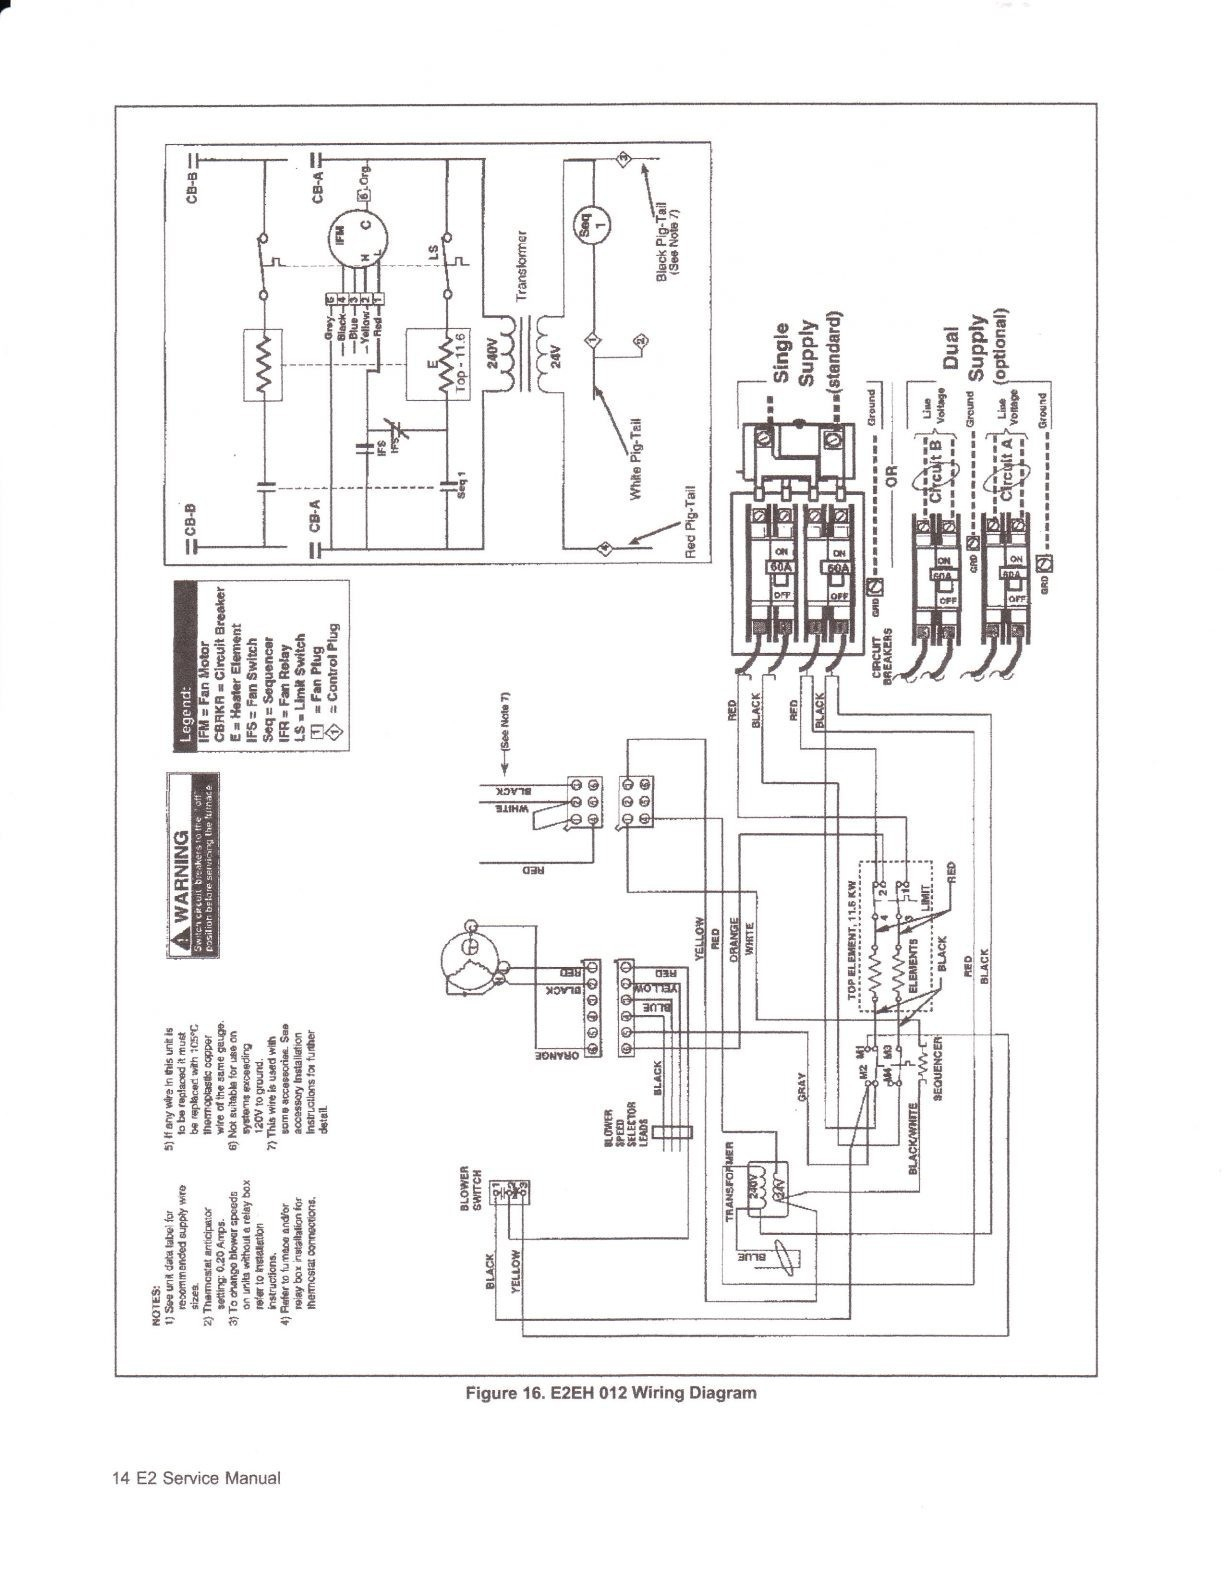 Heat Sequencer Wiring Diagram Lovely Goodman Electric Furnace 12 1 - Heat Sequencer Wiring Diagram